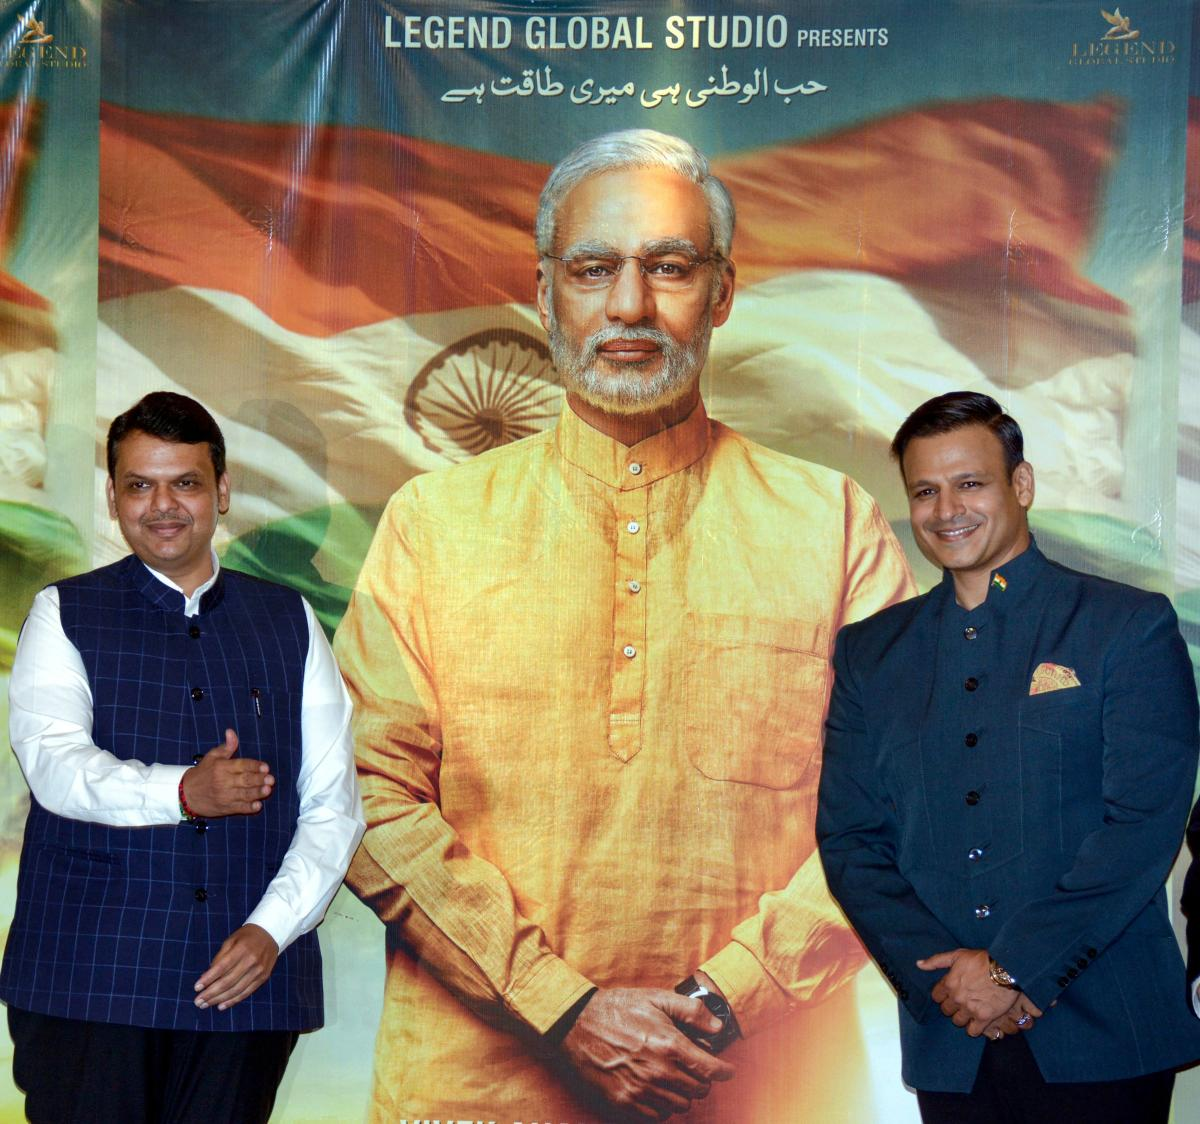 Maharashtra Chief Minister Devendra Fadnavis and actor Vivek Oberoi after the poster launch of Prime Minister Narendra Modi's biopic in Mumbai on Jan 7, 2019. PTI